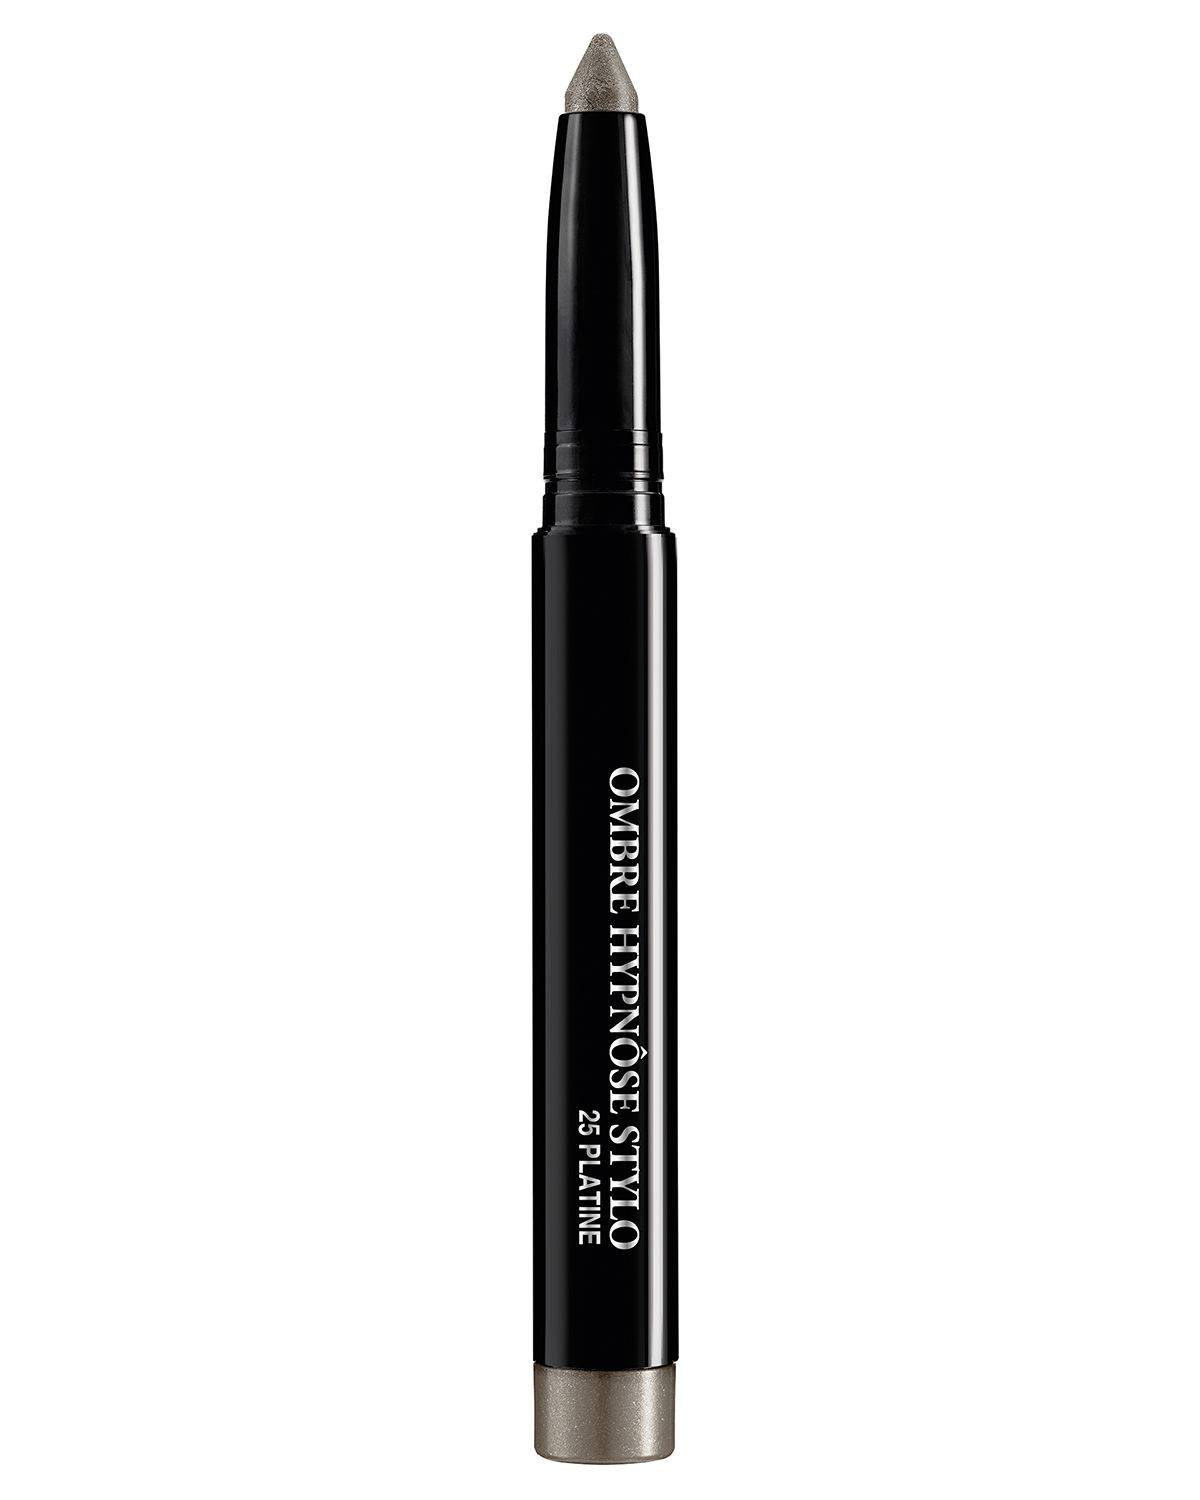 Lancome Ombre Hypnose Stylo - Matte Metallics